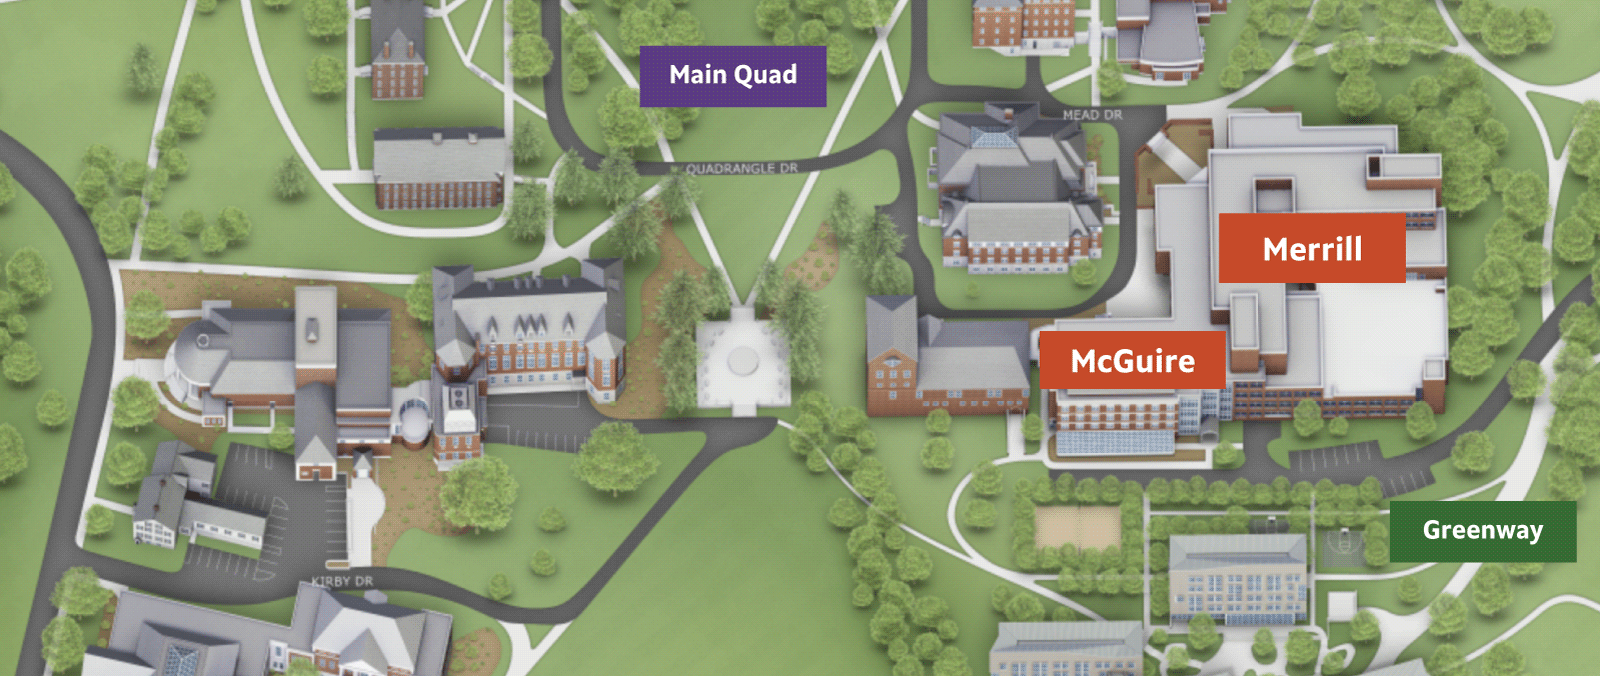 Merrill and McGuire locations shown on campus map